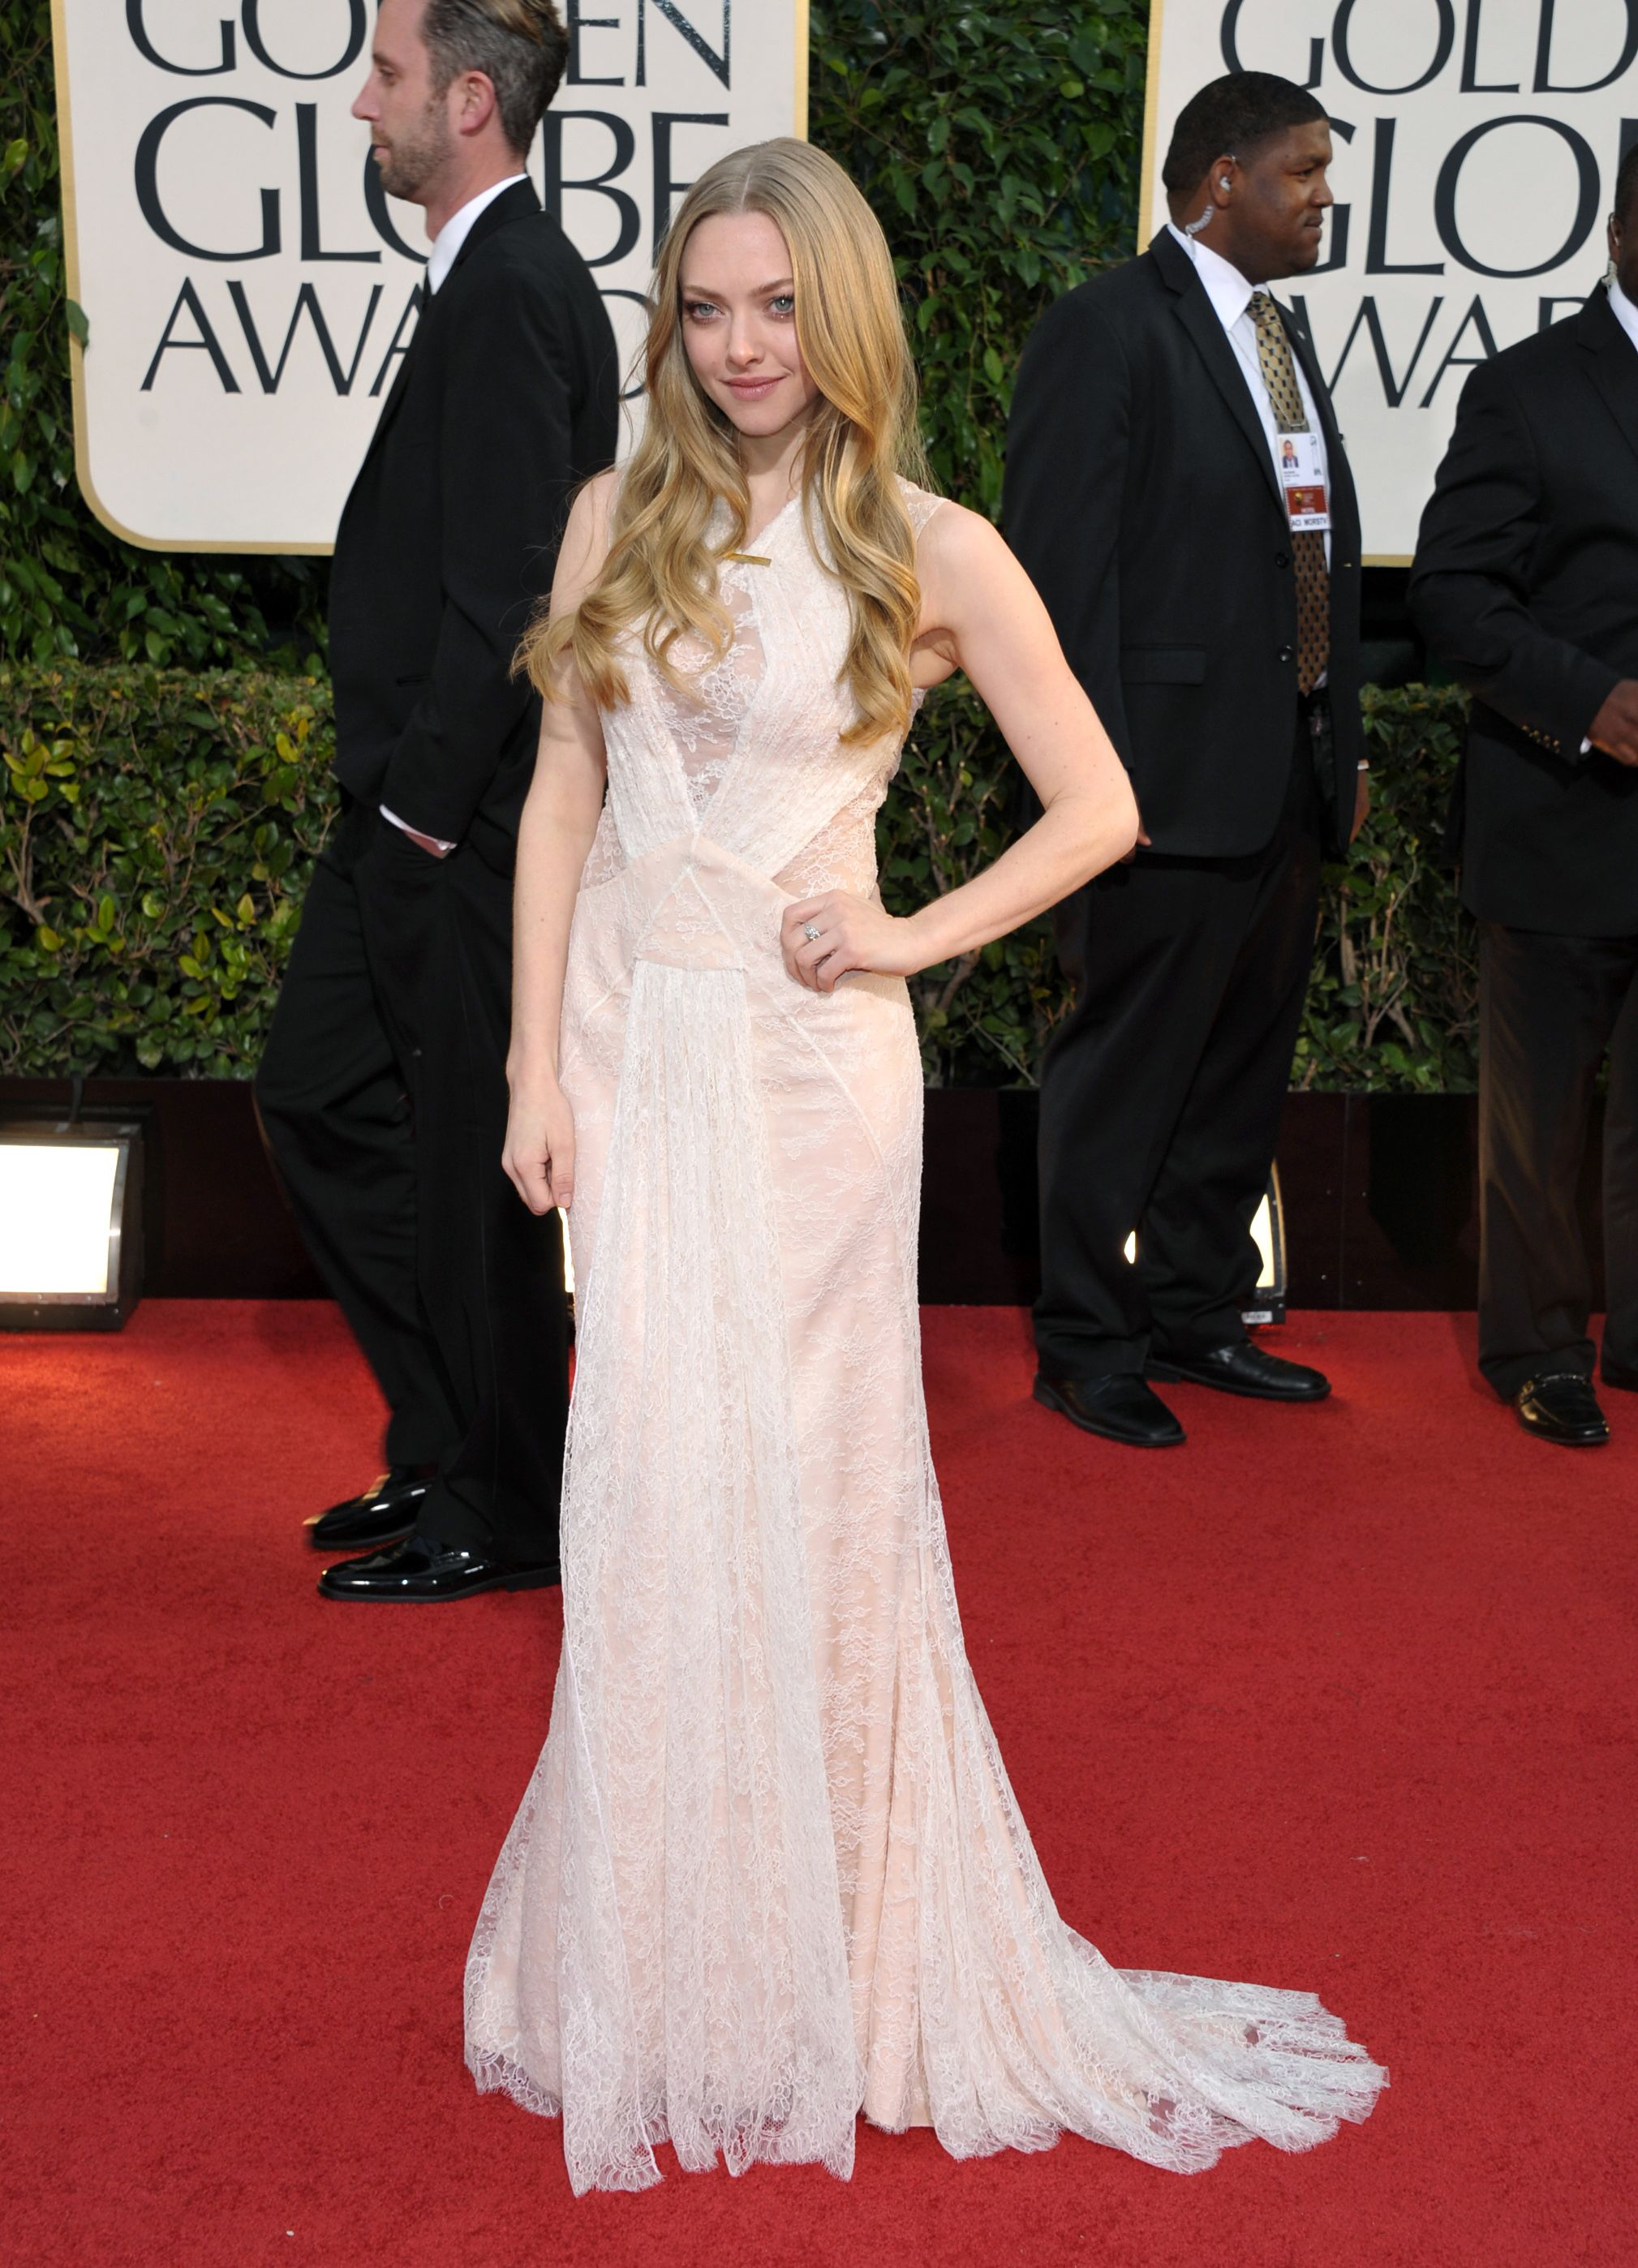 151718357_AmandaSeyfried_70thAnnualGoldenGlobeAwards5_122_337lo